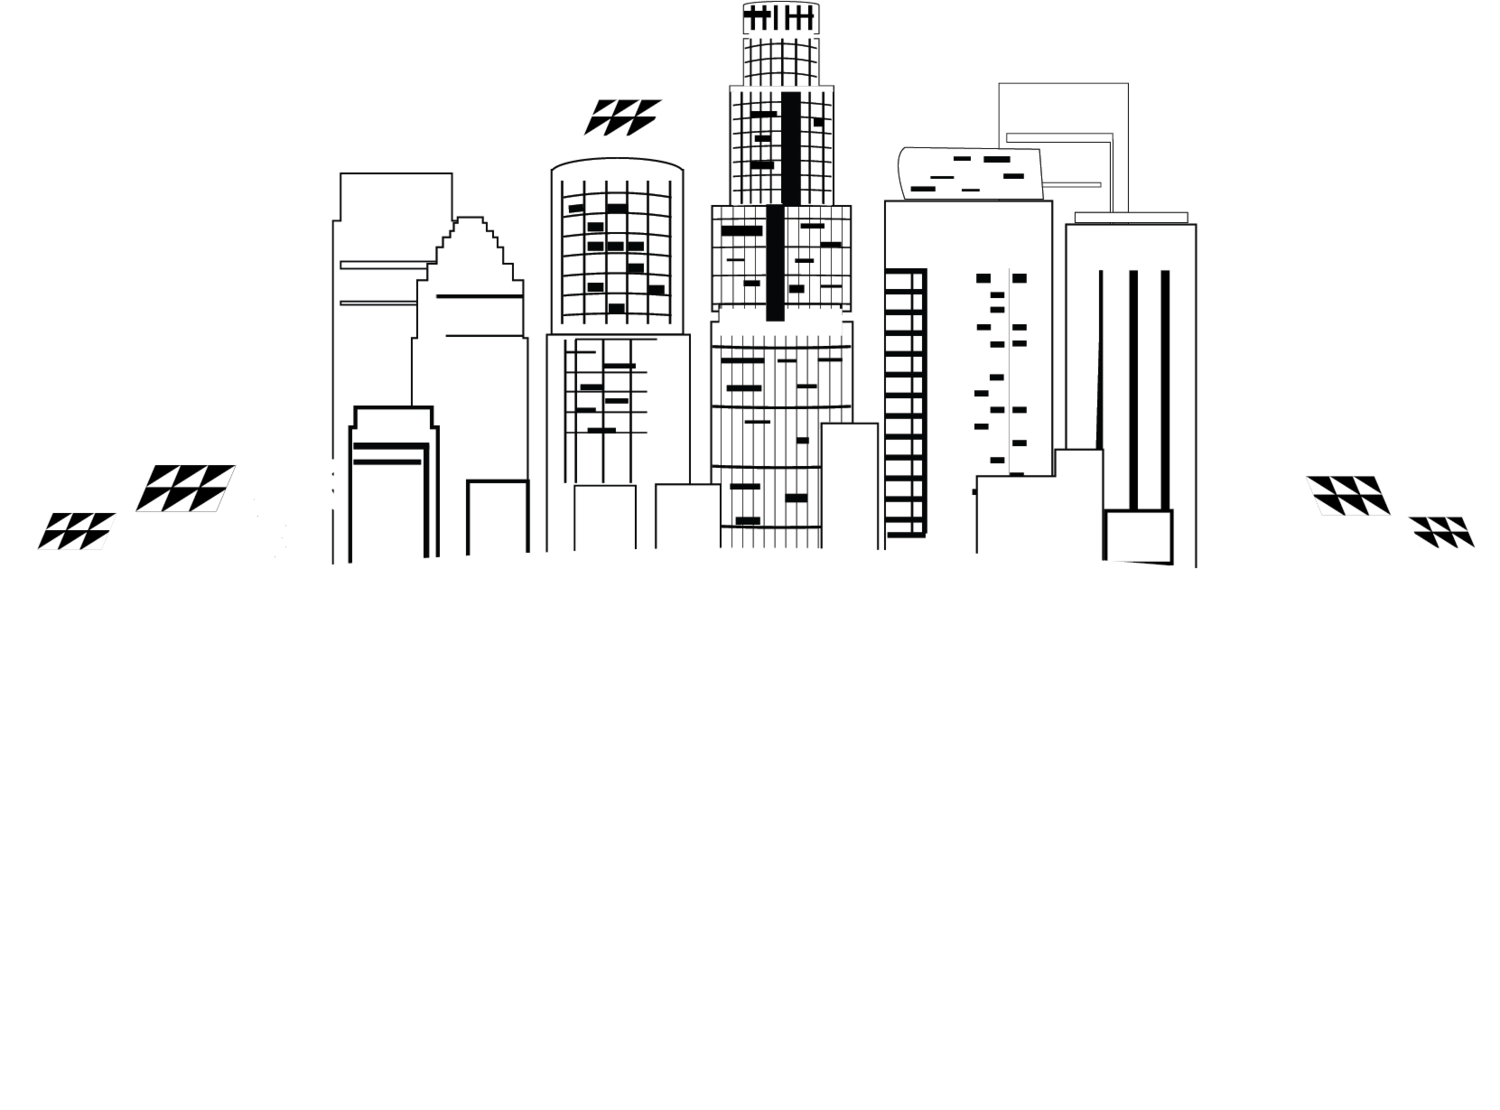 Los Angeles Clean Energy Coalition